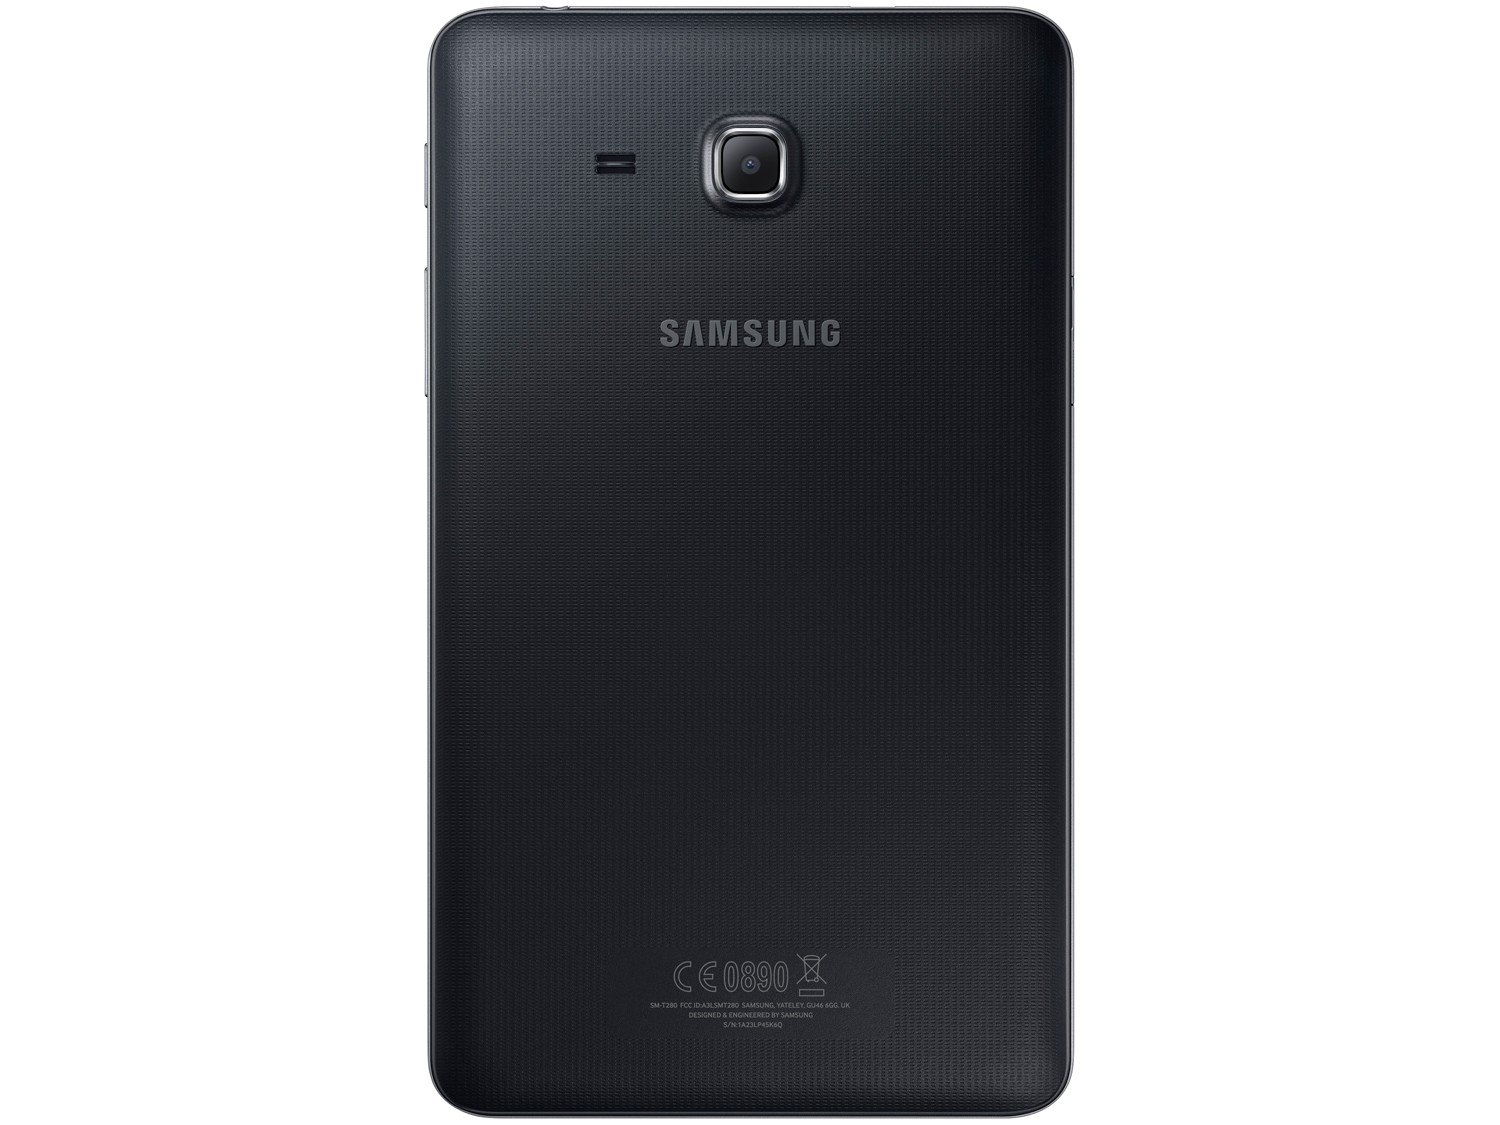 Foto 3 - Tablet Samsung Galaxy Tab A T285 8GB 7 4G Wi-Fi - Android 5.1 Proc. Quad Core Câmera 5MP + Frontal